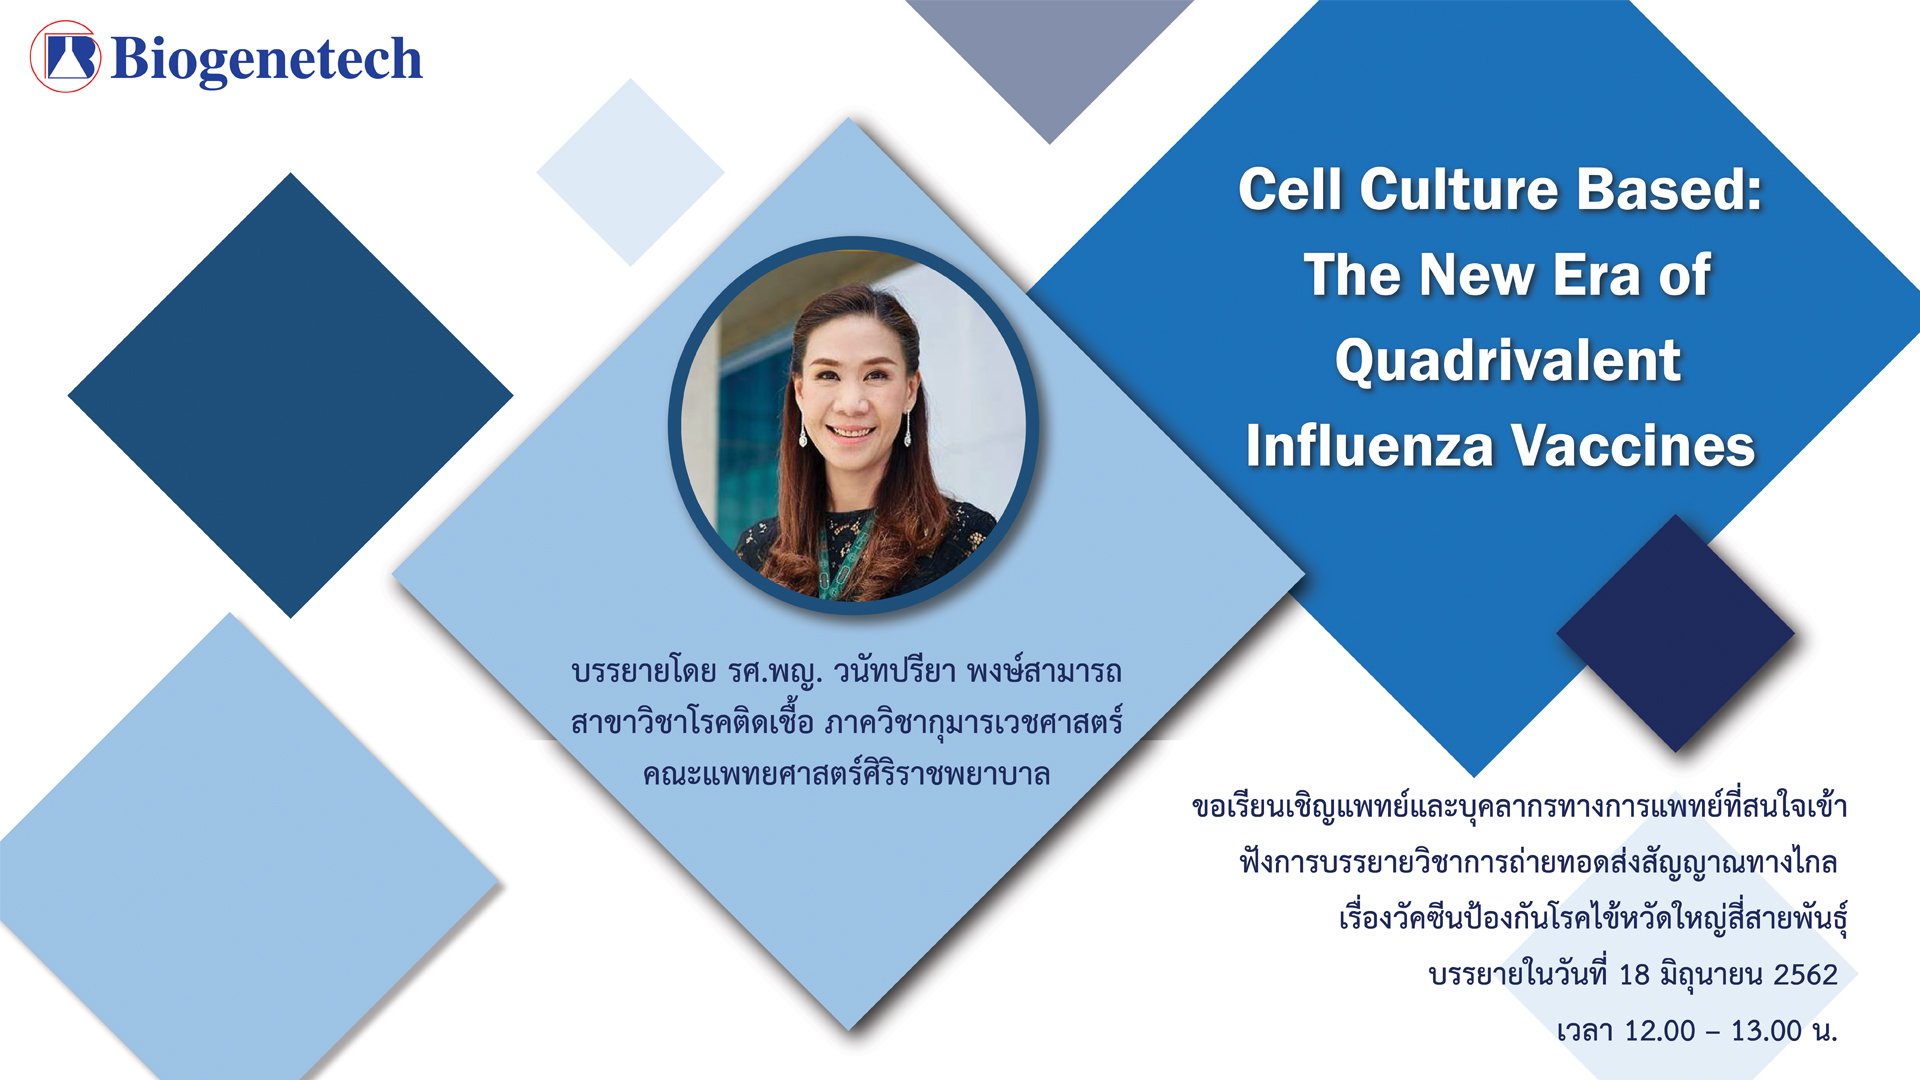 Cell Culture Based : The New Era of Quadrivalent Influenza Vaccines